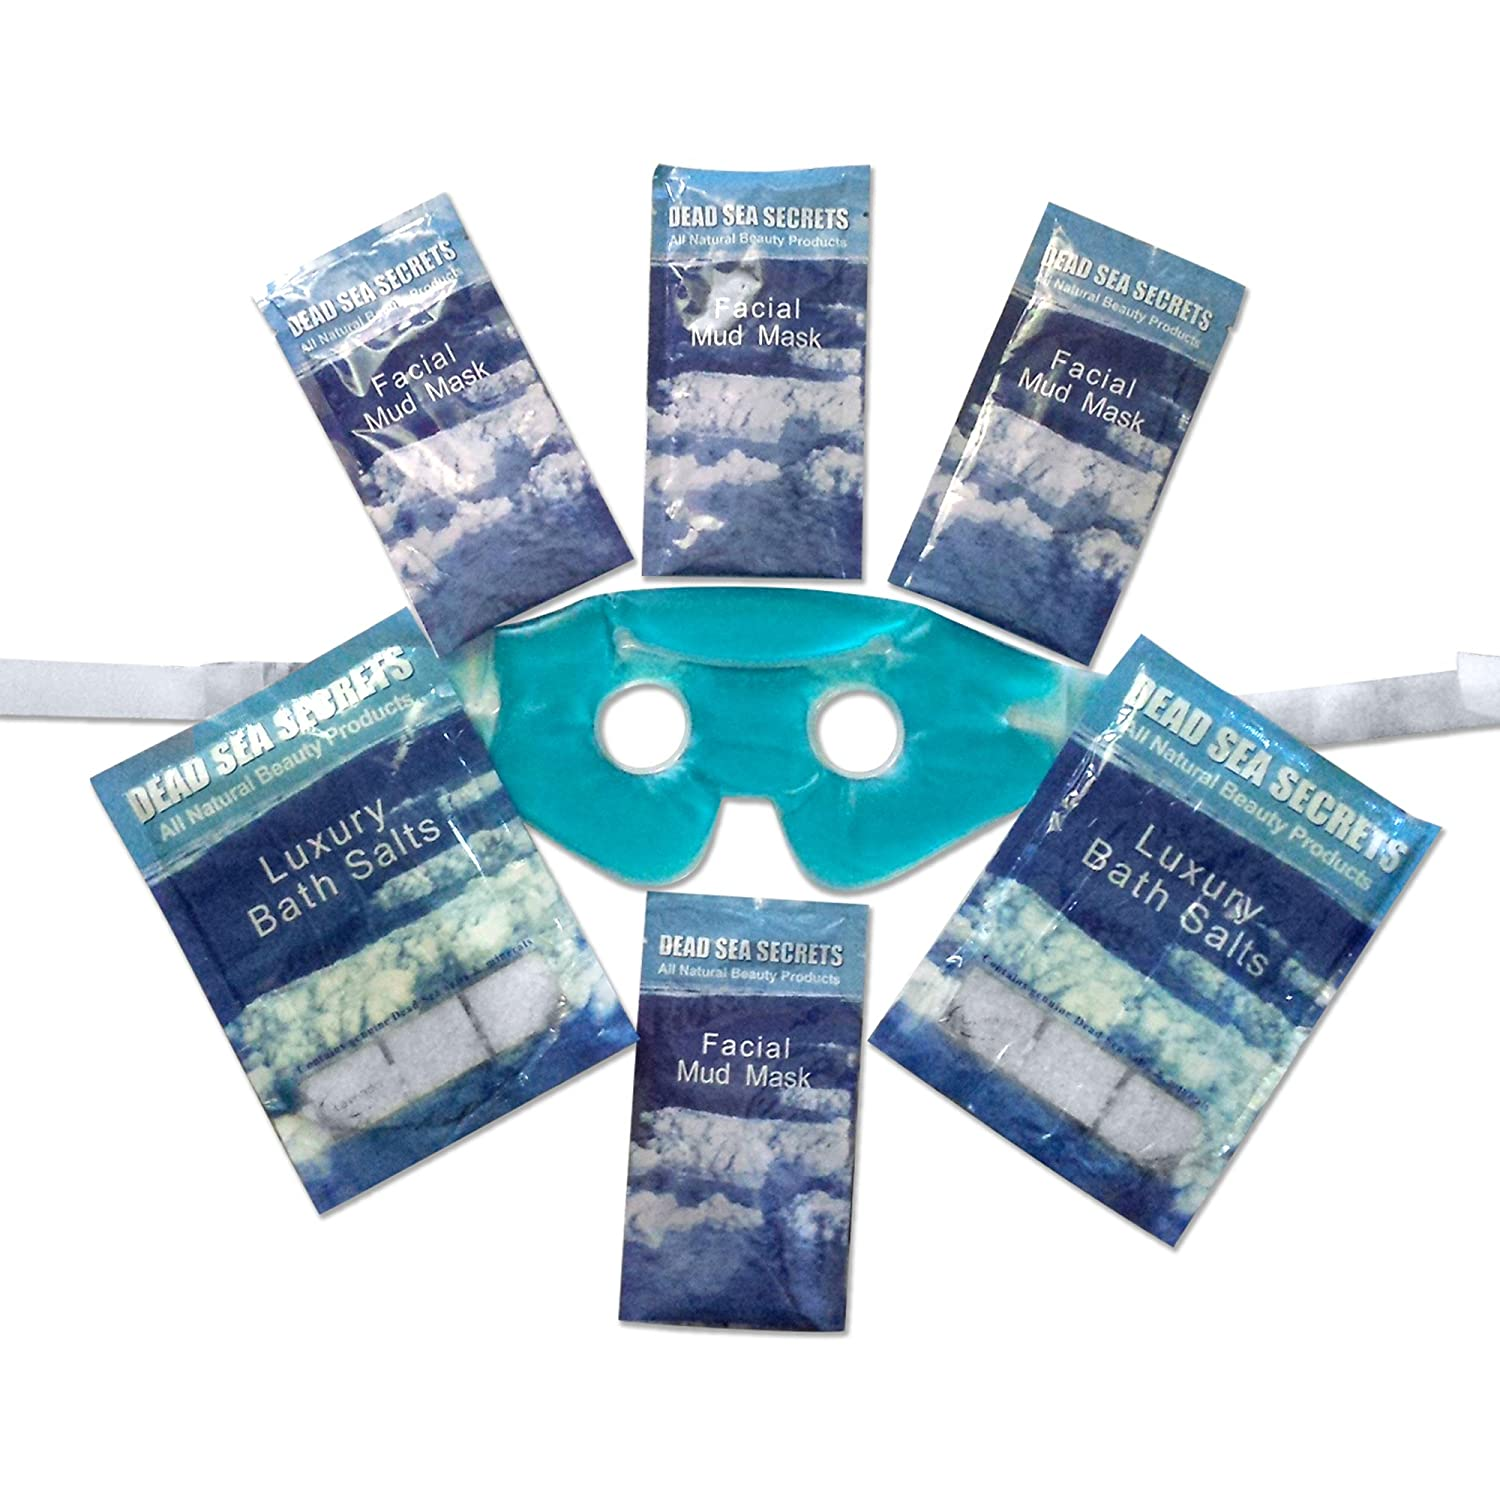 Premier Dead Sea Relaxation Gift of Dead Sea Mud Masks and Dead Sea Salts from Israel plus Soothing Eye Gel Mask, Organic Skin Care for Bath and Body